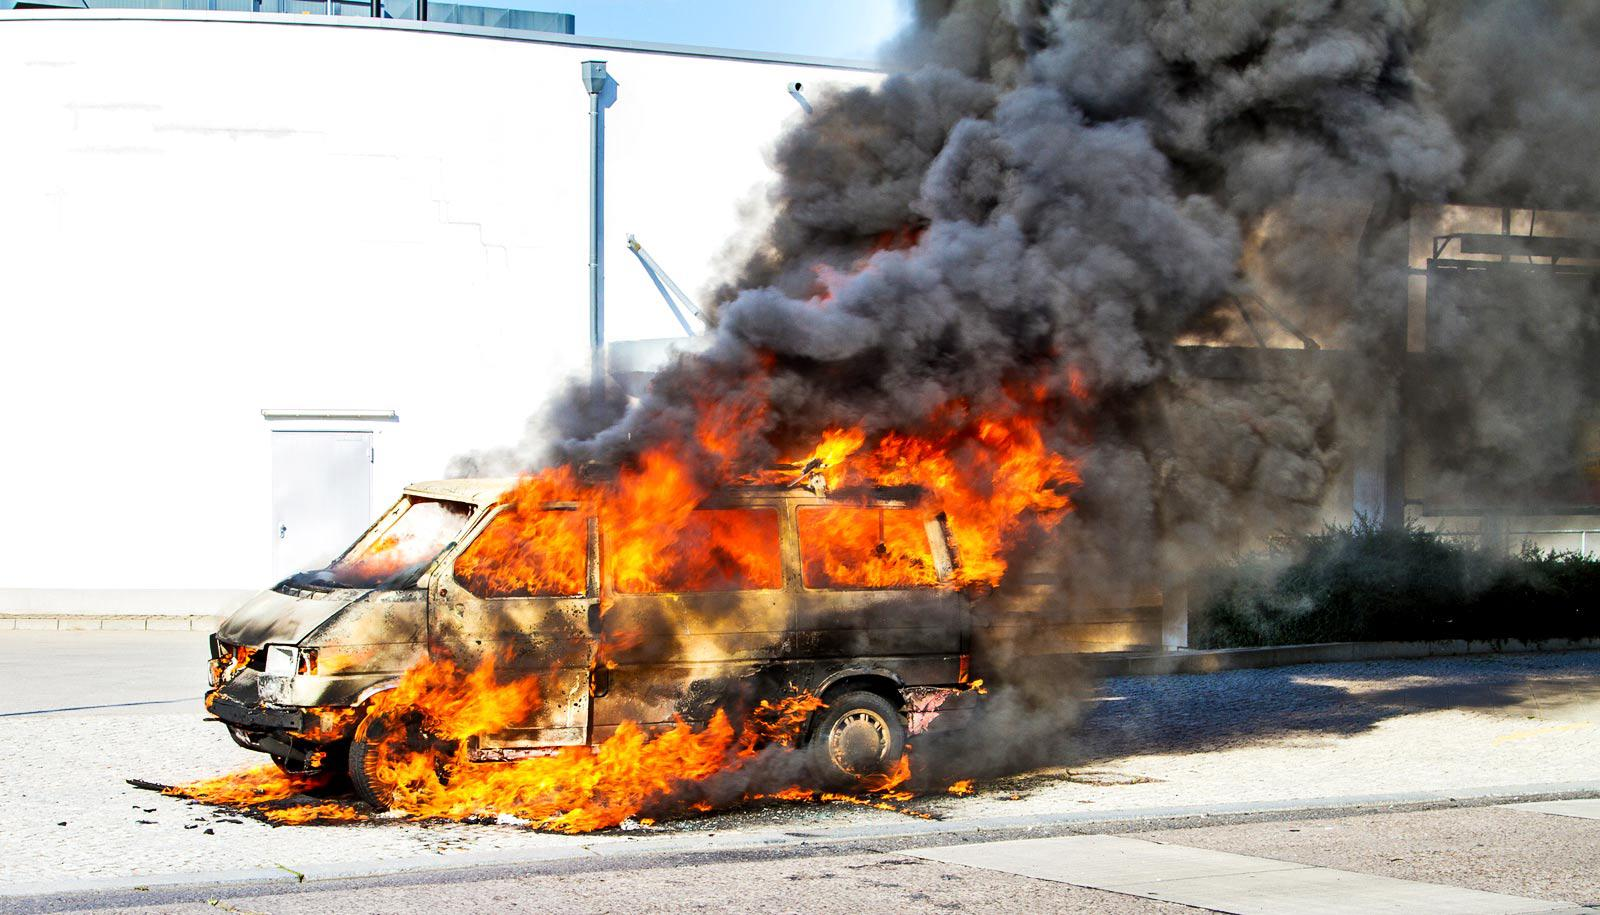 car on fire - armed conflict